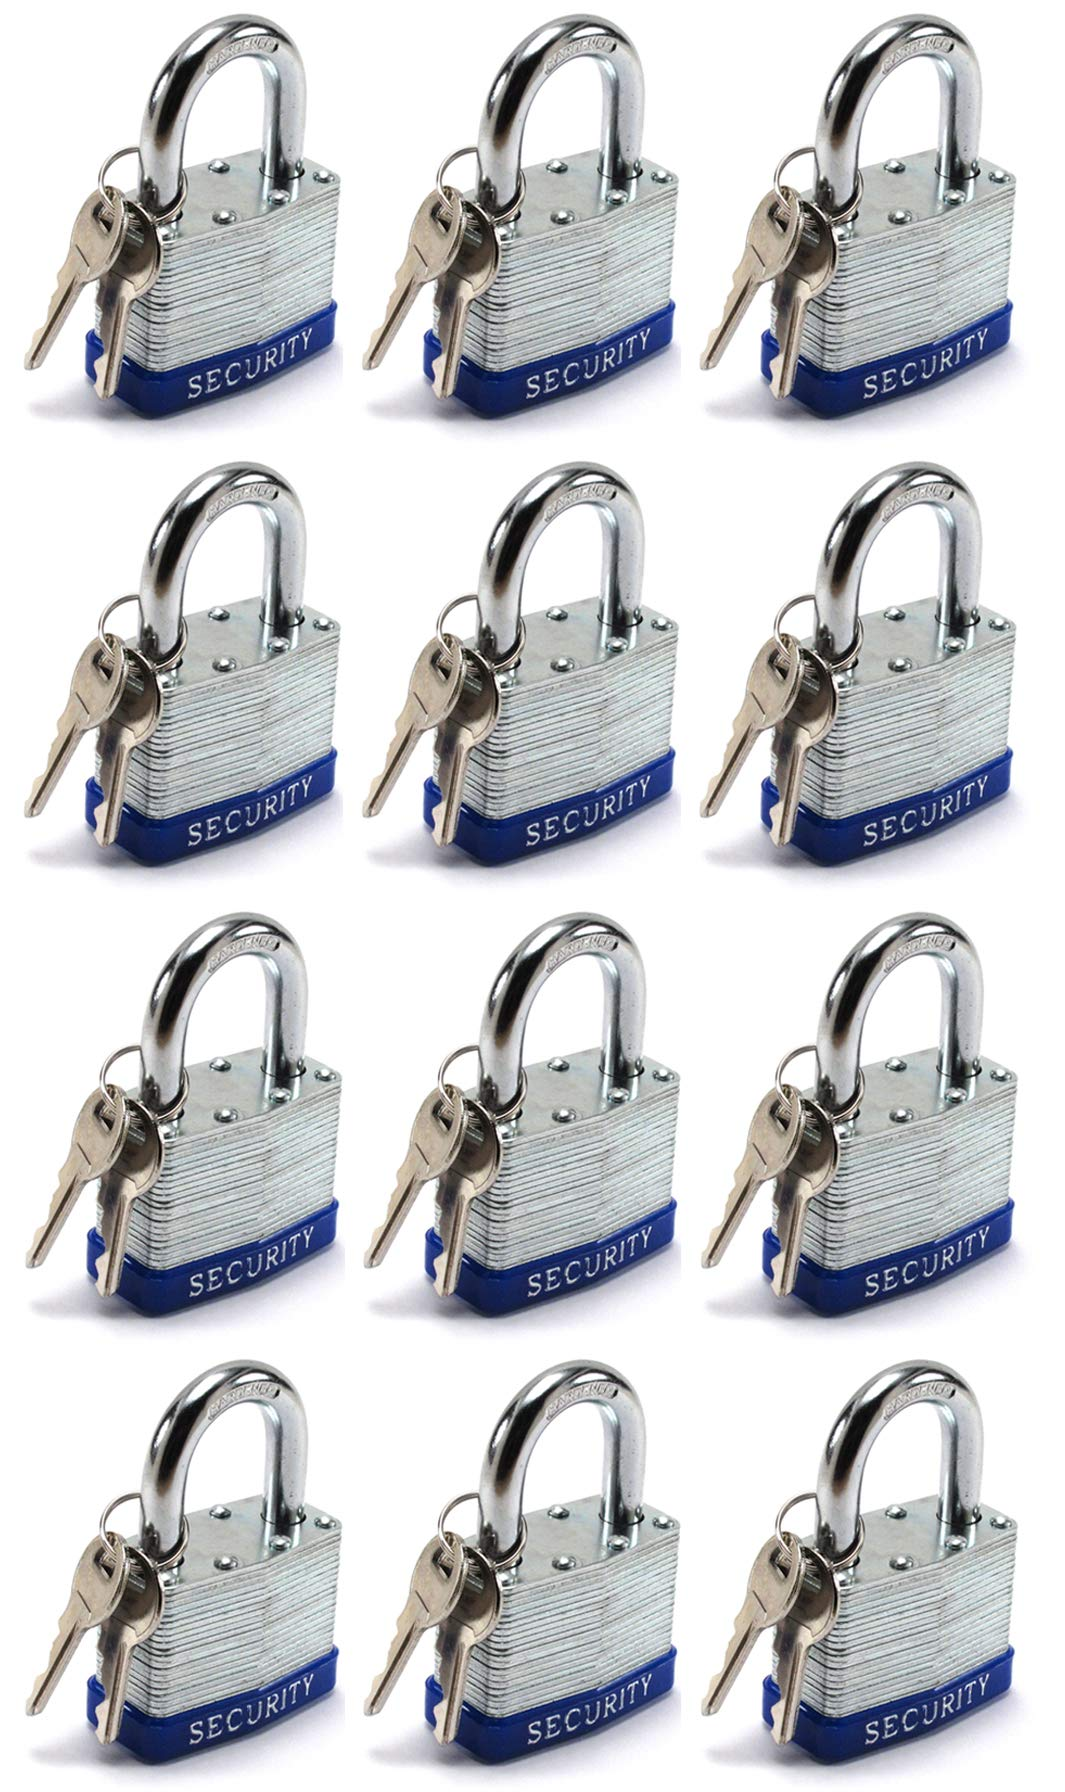 Elitexion Heavy Duty Laminated Steel Padlock, Commercial Grade Keyed Alike 1-Inch (Pack of 12) by Elitexion